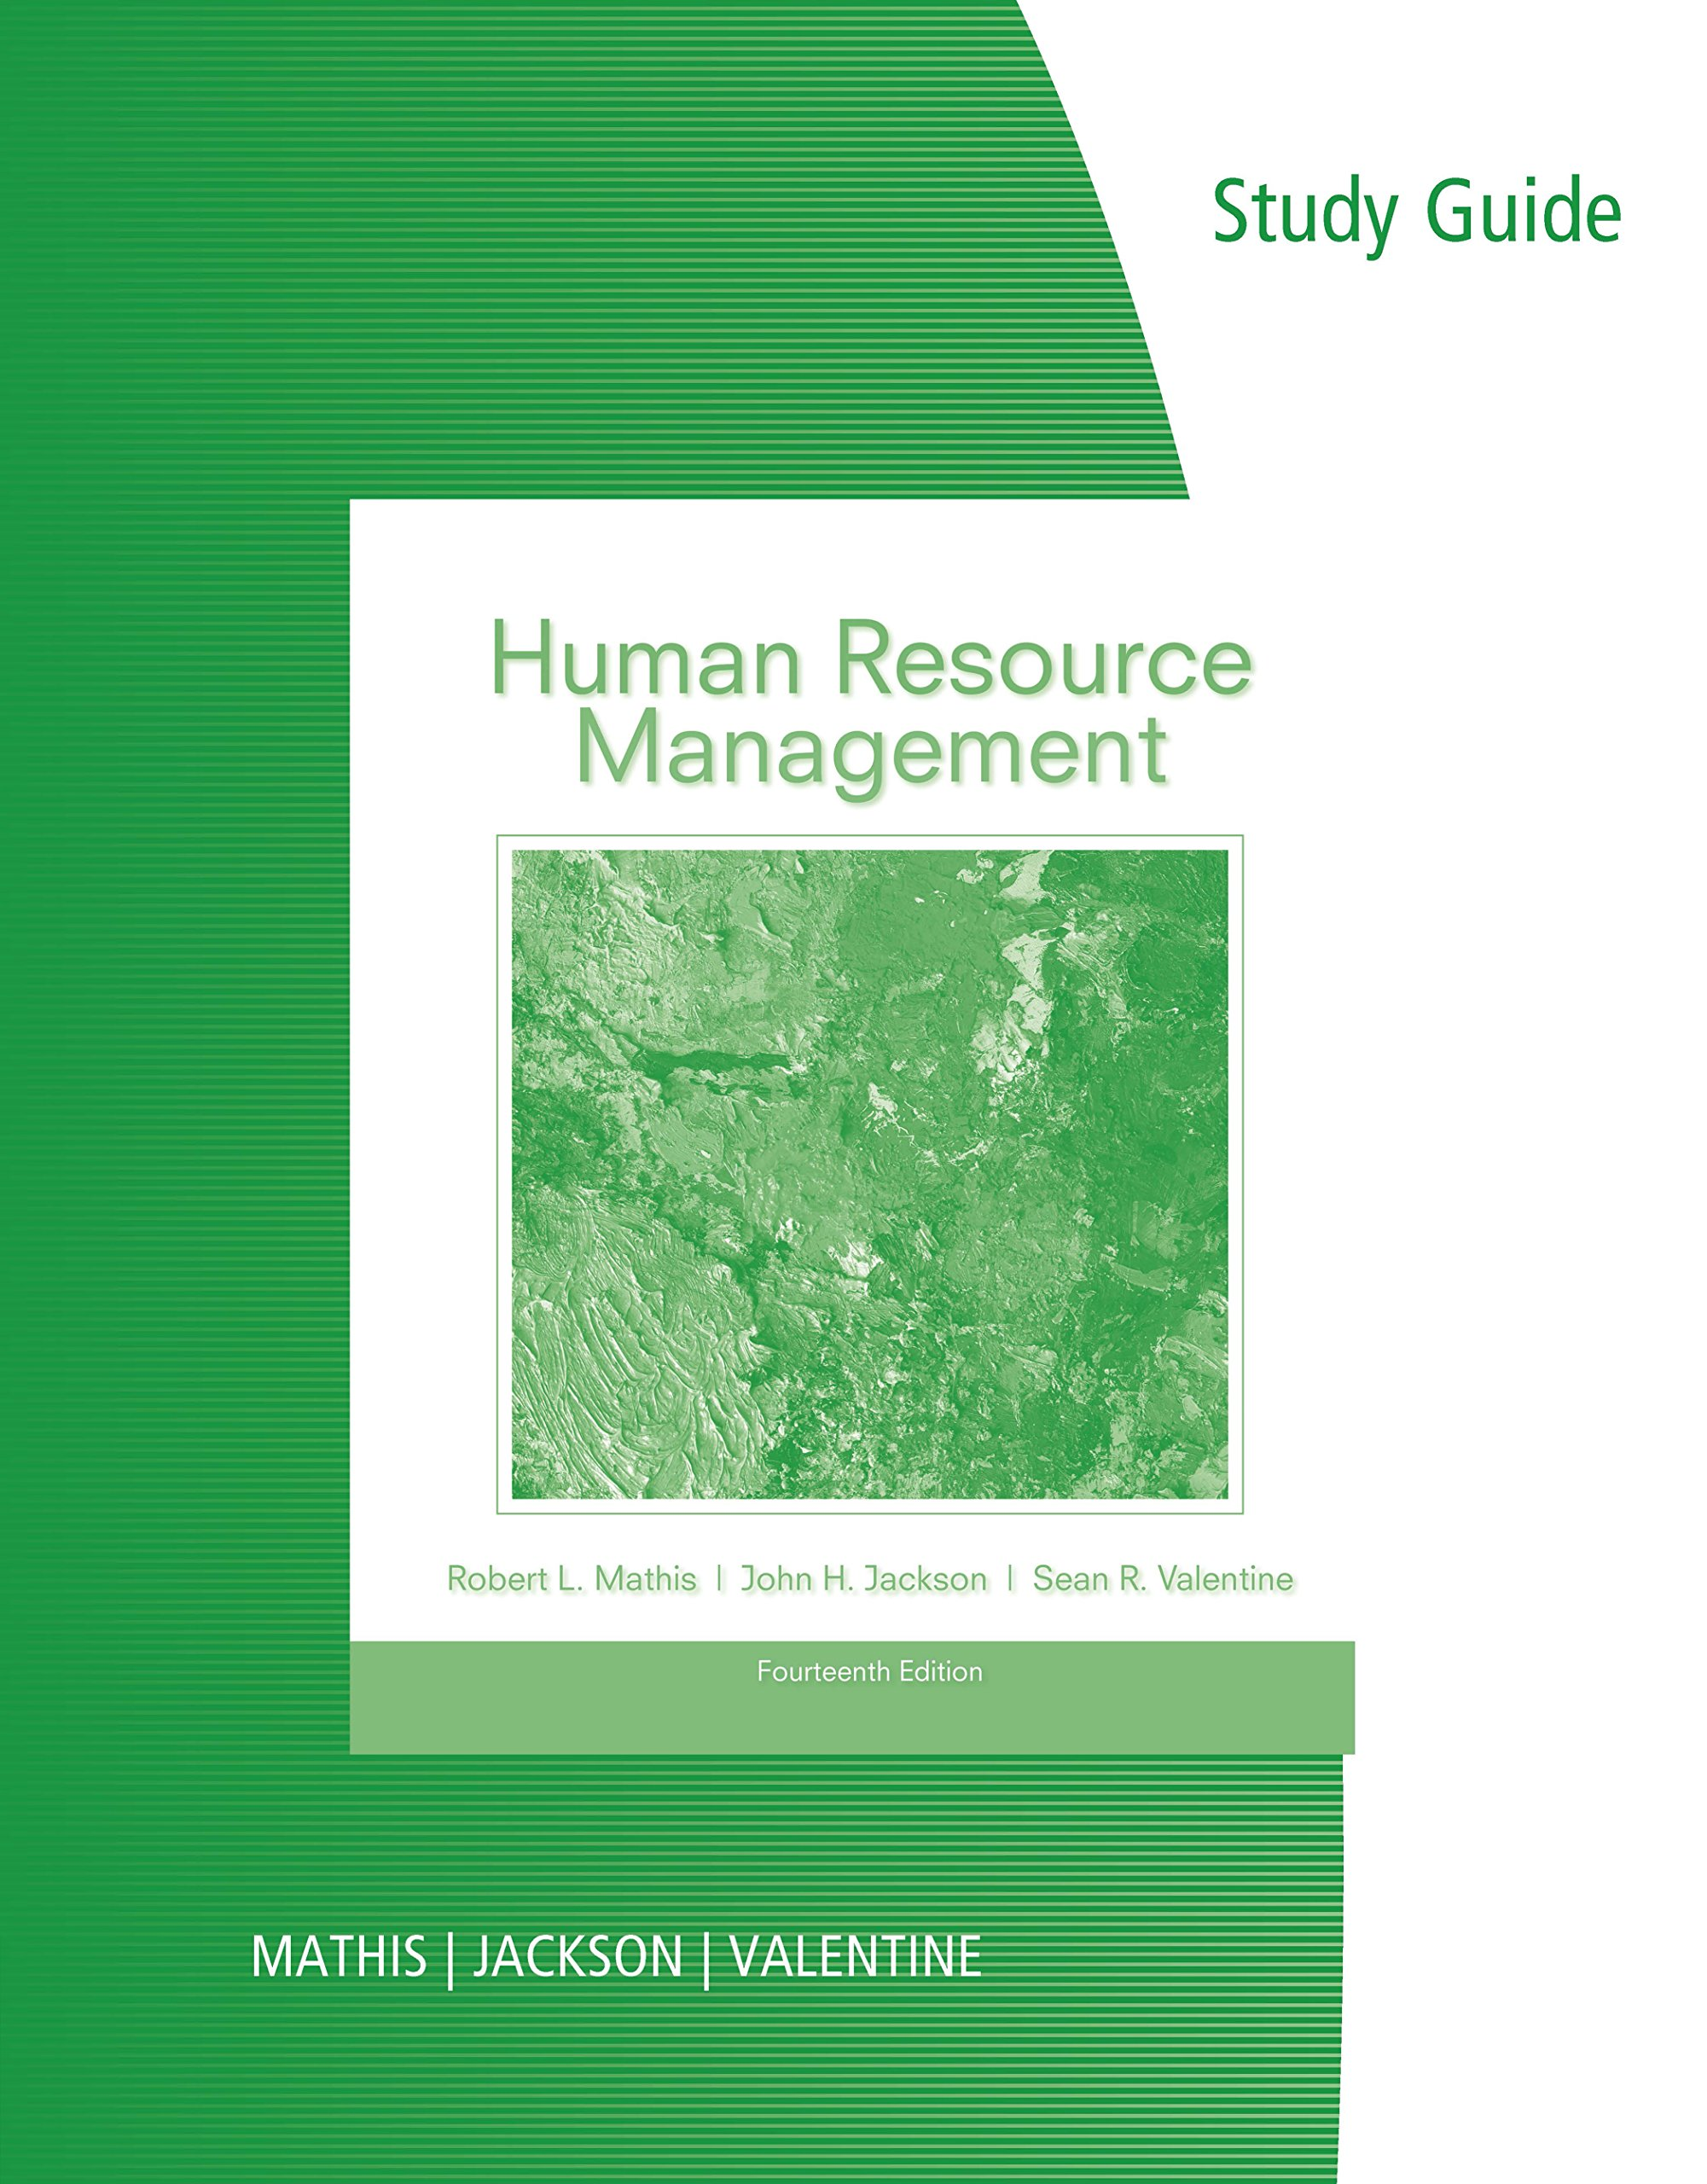 Study Guide for Mathis/Jackson/Valentine's Human Resource Management, 14th